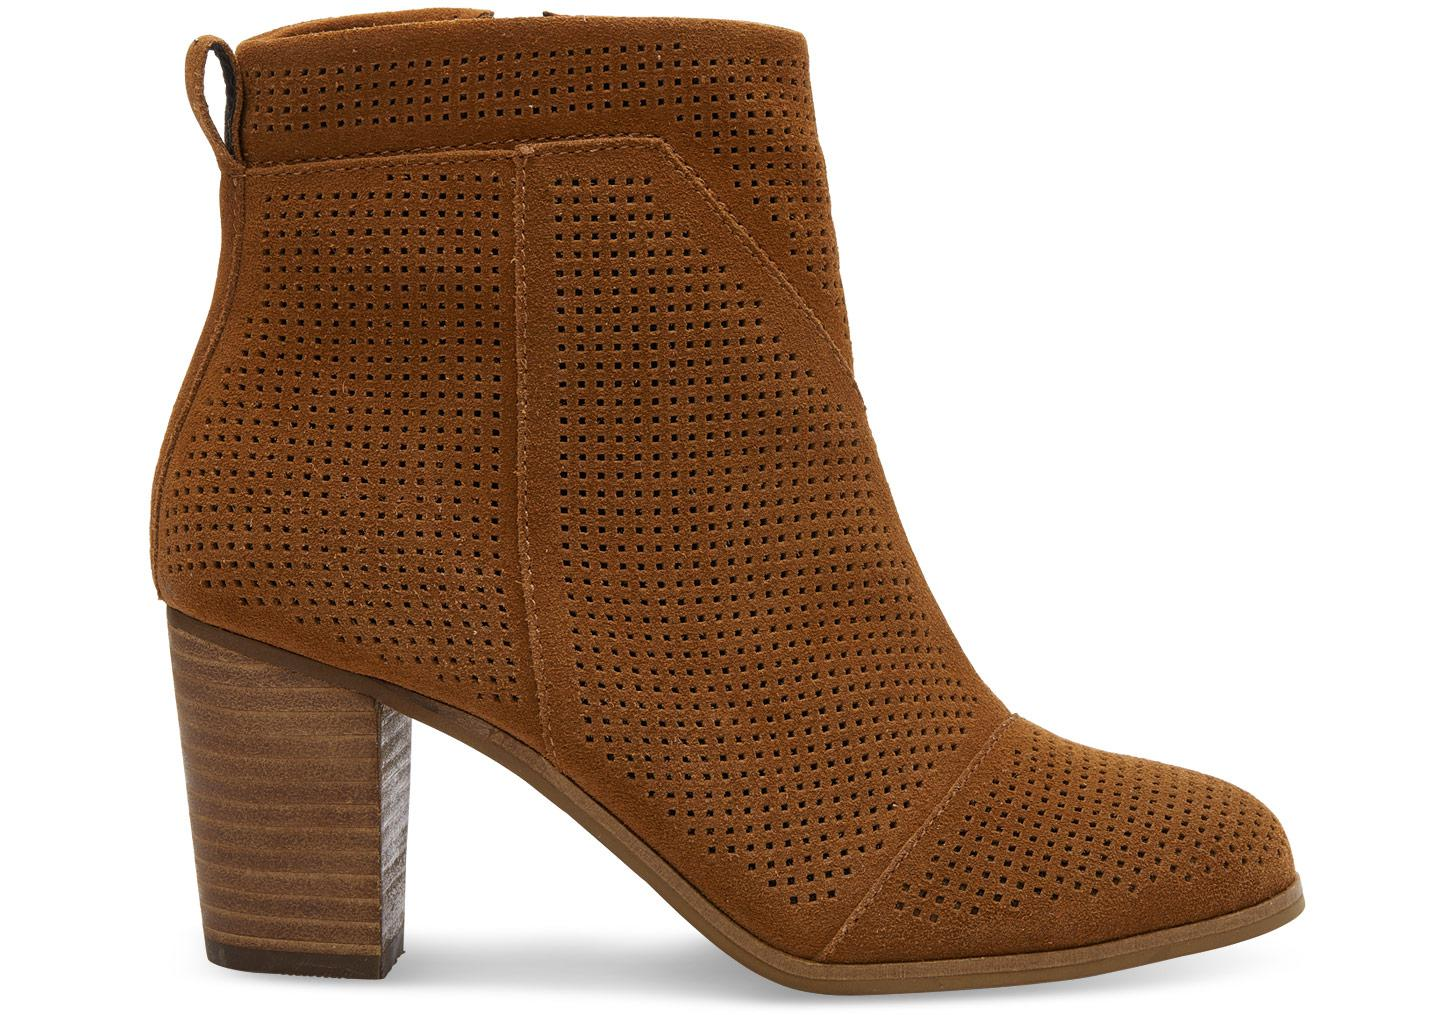 83e79e2a9ae Lyst - Toms Cinnamon Suede Perforated Women s Lunata Booties in Brown